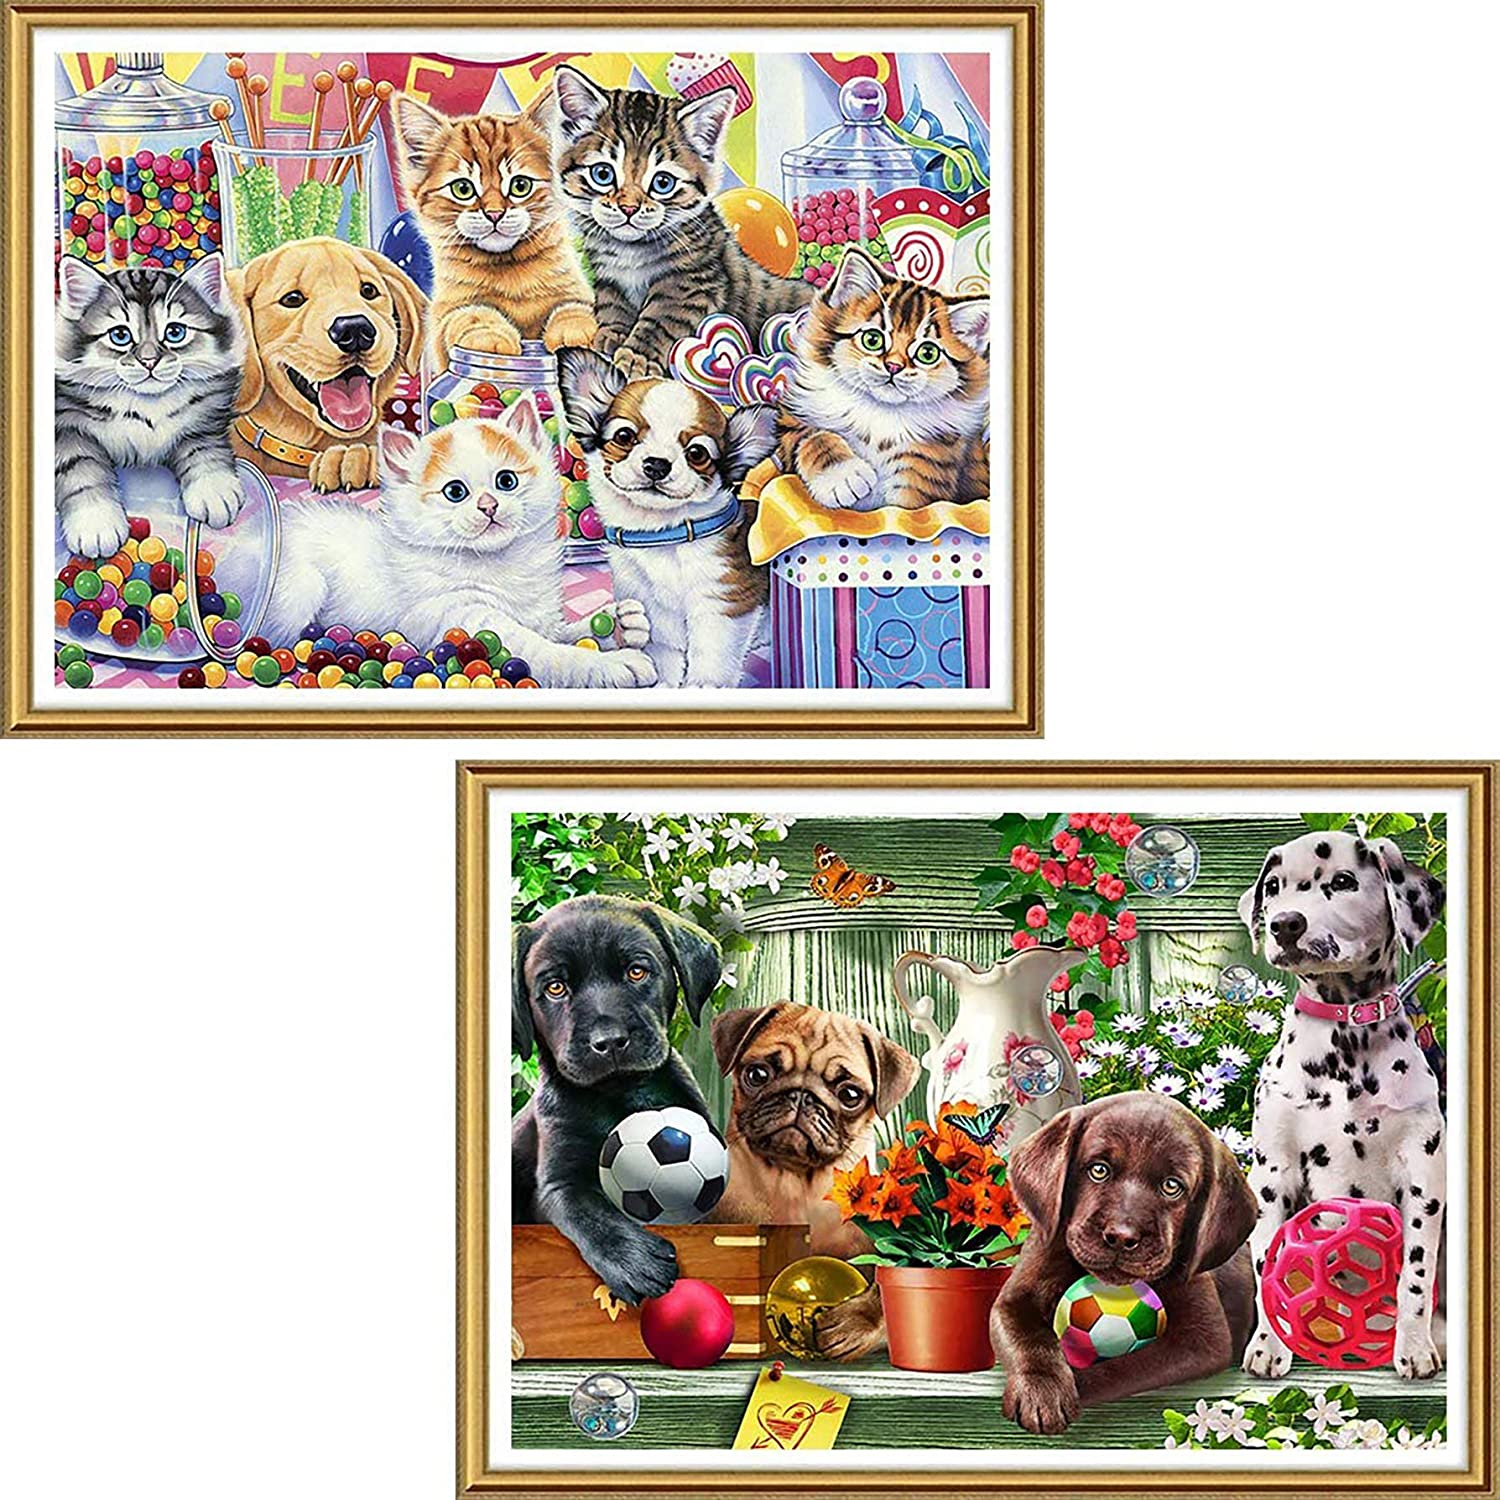 Yomiie 5D Diamond Painting Arts Full Drill Puppy Kitten Kitchen & Dog Garden by Number Kits, Pets Paint with Diamond Cross Stitch Animal DogCat DIY Craft Decor (12x16inch, 2 Pack) a202